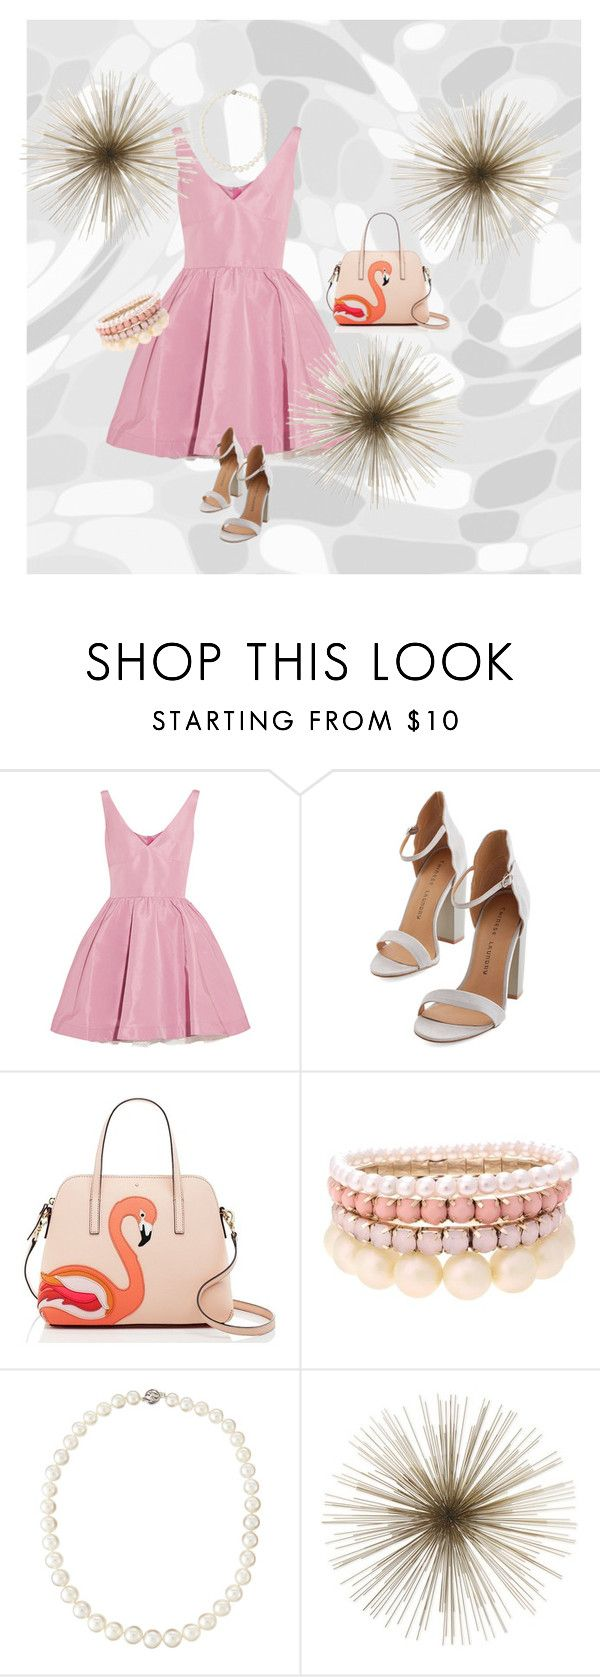 """Summer dresses combos #1"" by jajalamajala ❤ liked on Polyvore featuring moda, RED Valentino, Kate Spade, Lipsy y Belpearl"